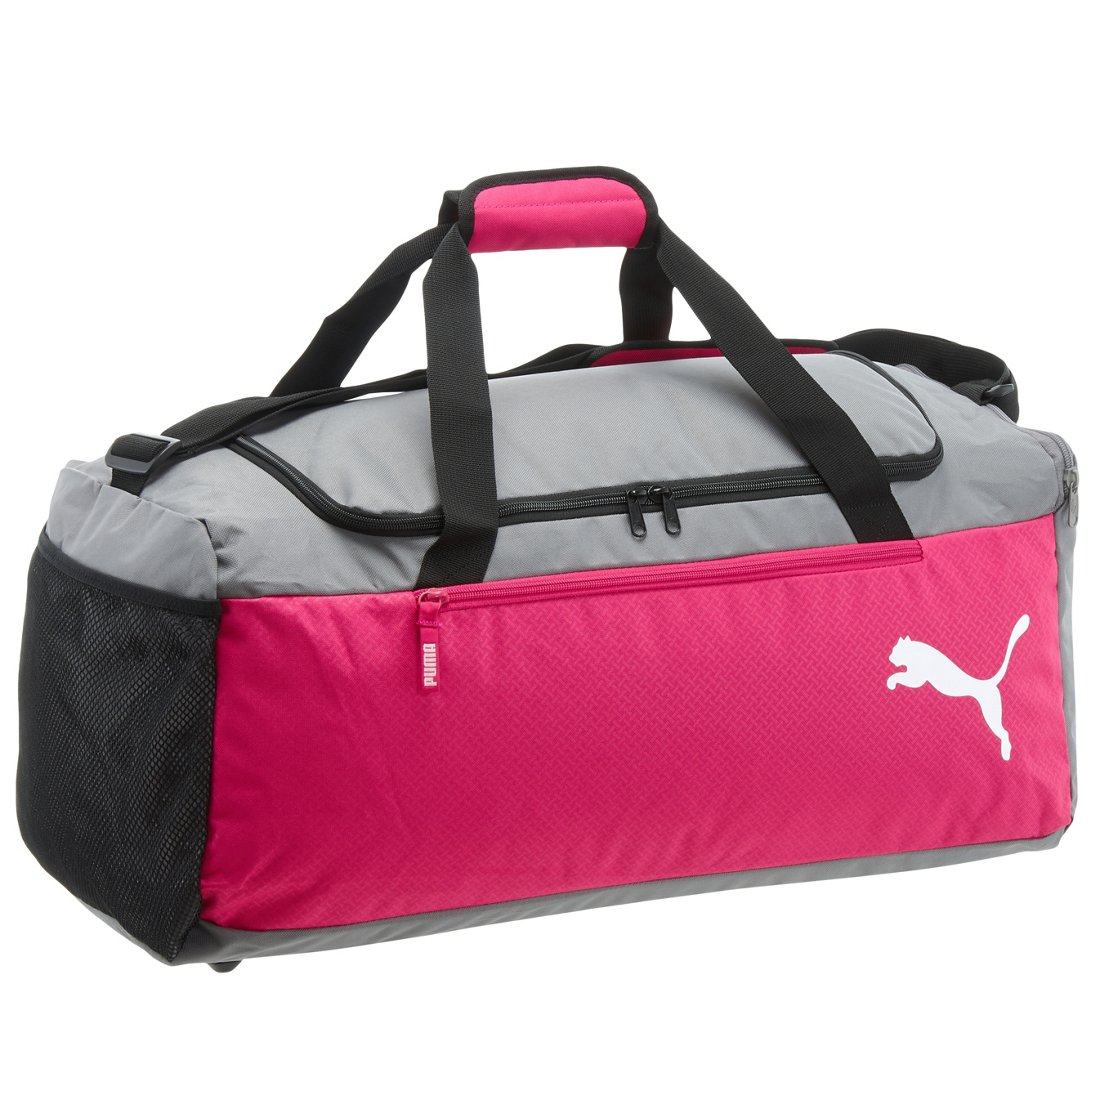 be68eca019 Puma Fundamentals Sports Bag M Sporttasche 60 cm - koffer-direkt.de